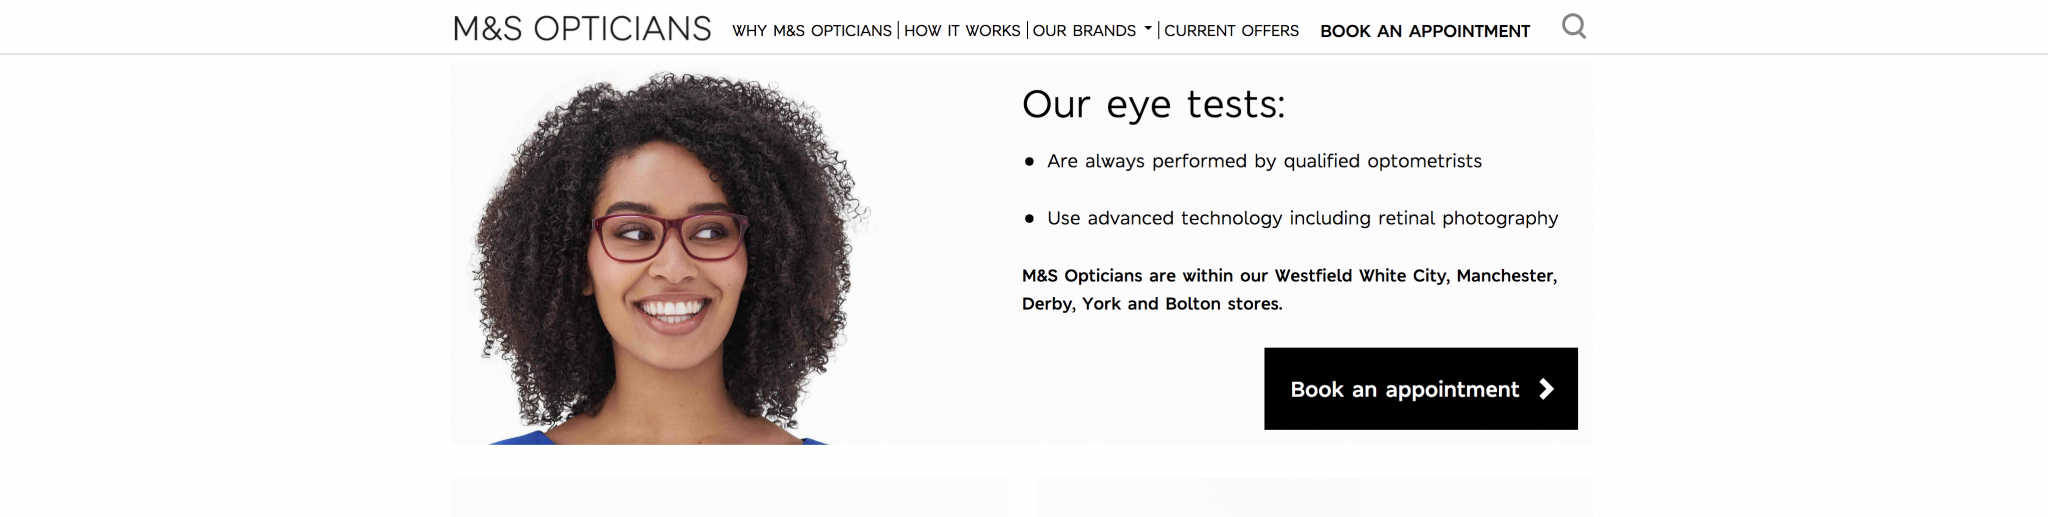 M&S Opticians Screenshot 'Booking Appointment'